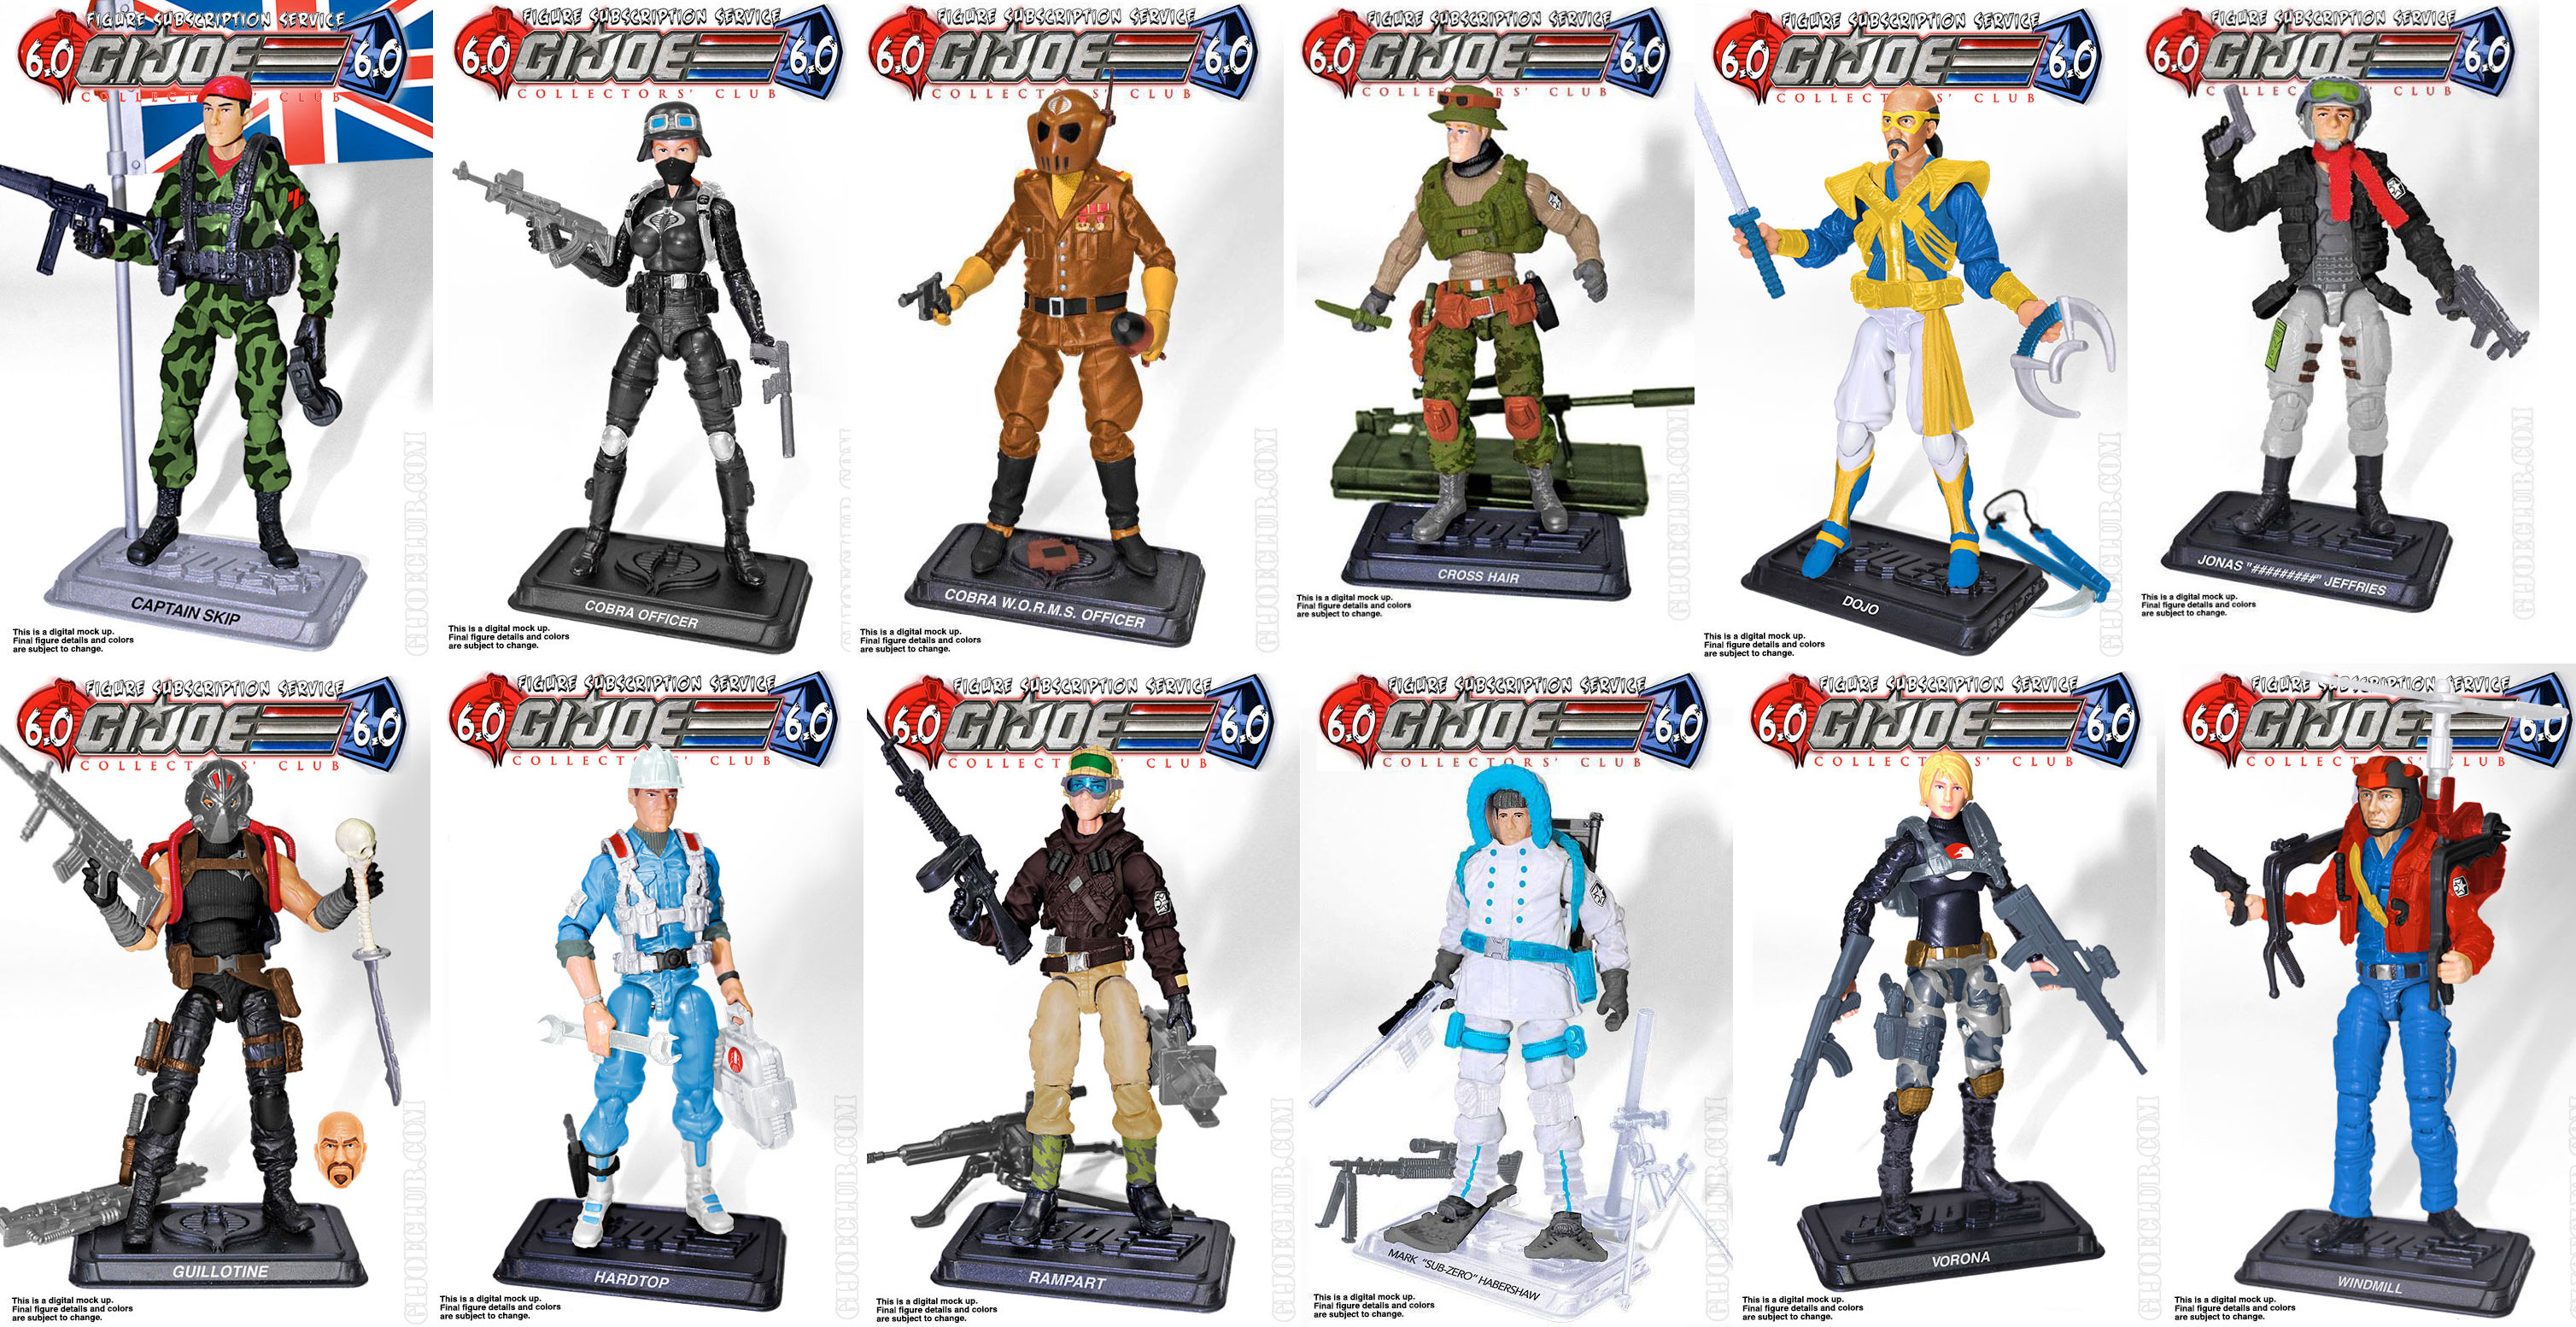 gi-joe-collectors-club-figure-subscription-service-6-action-figures